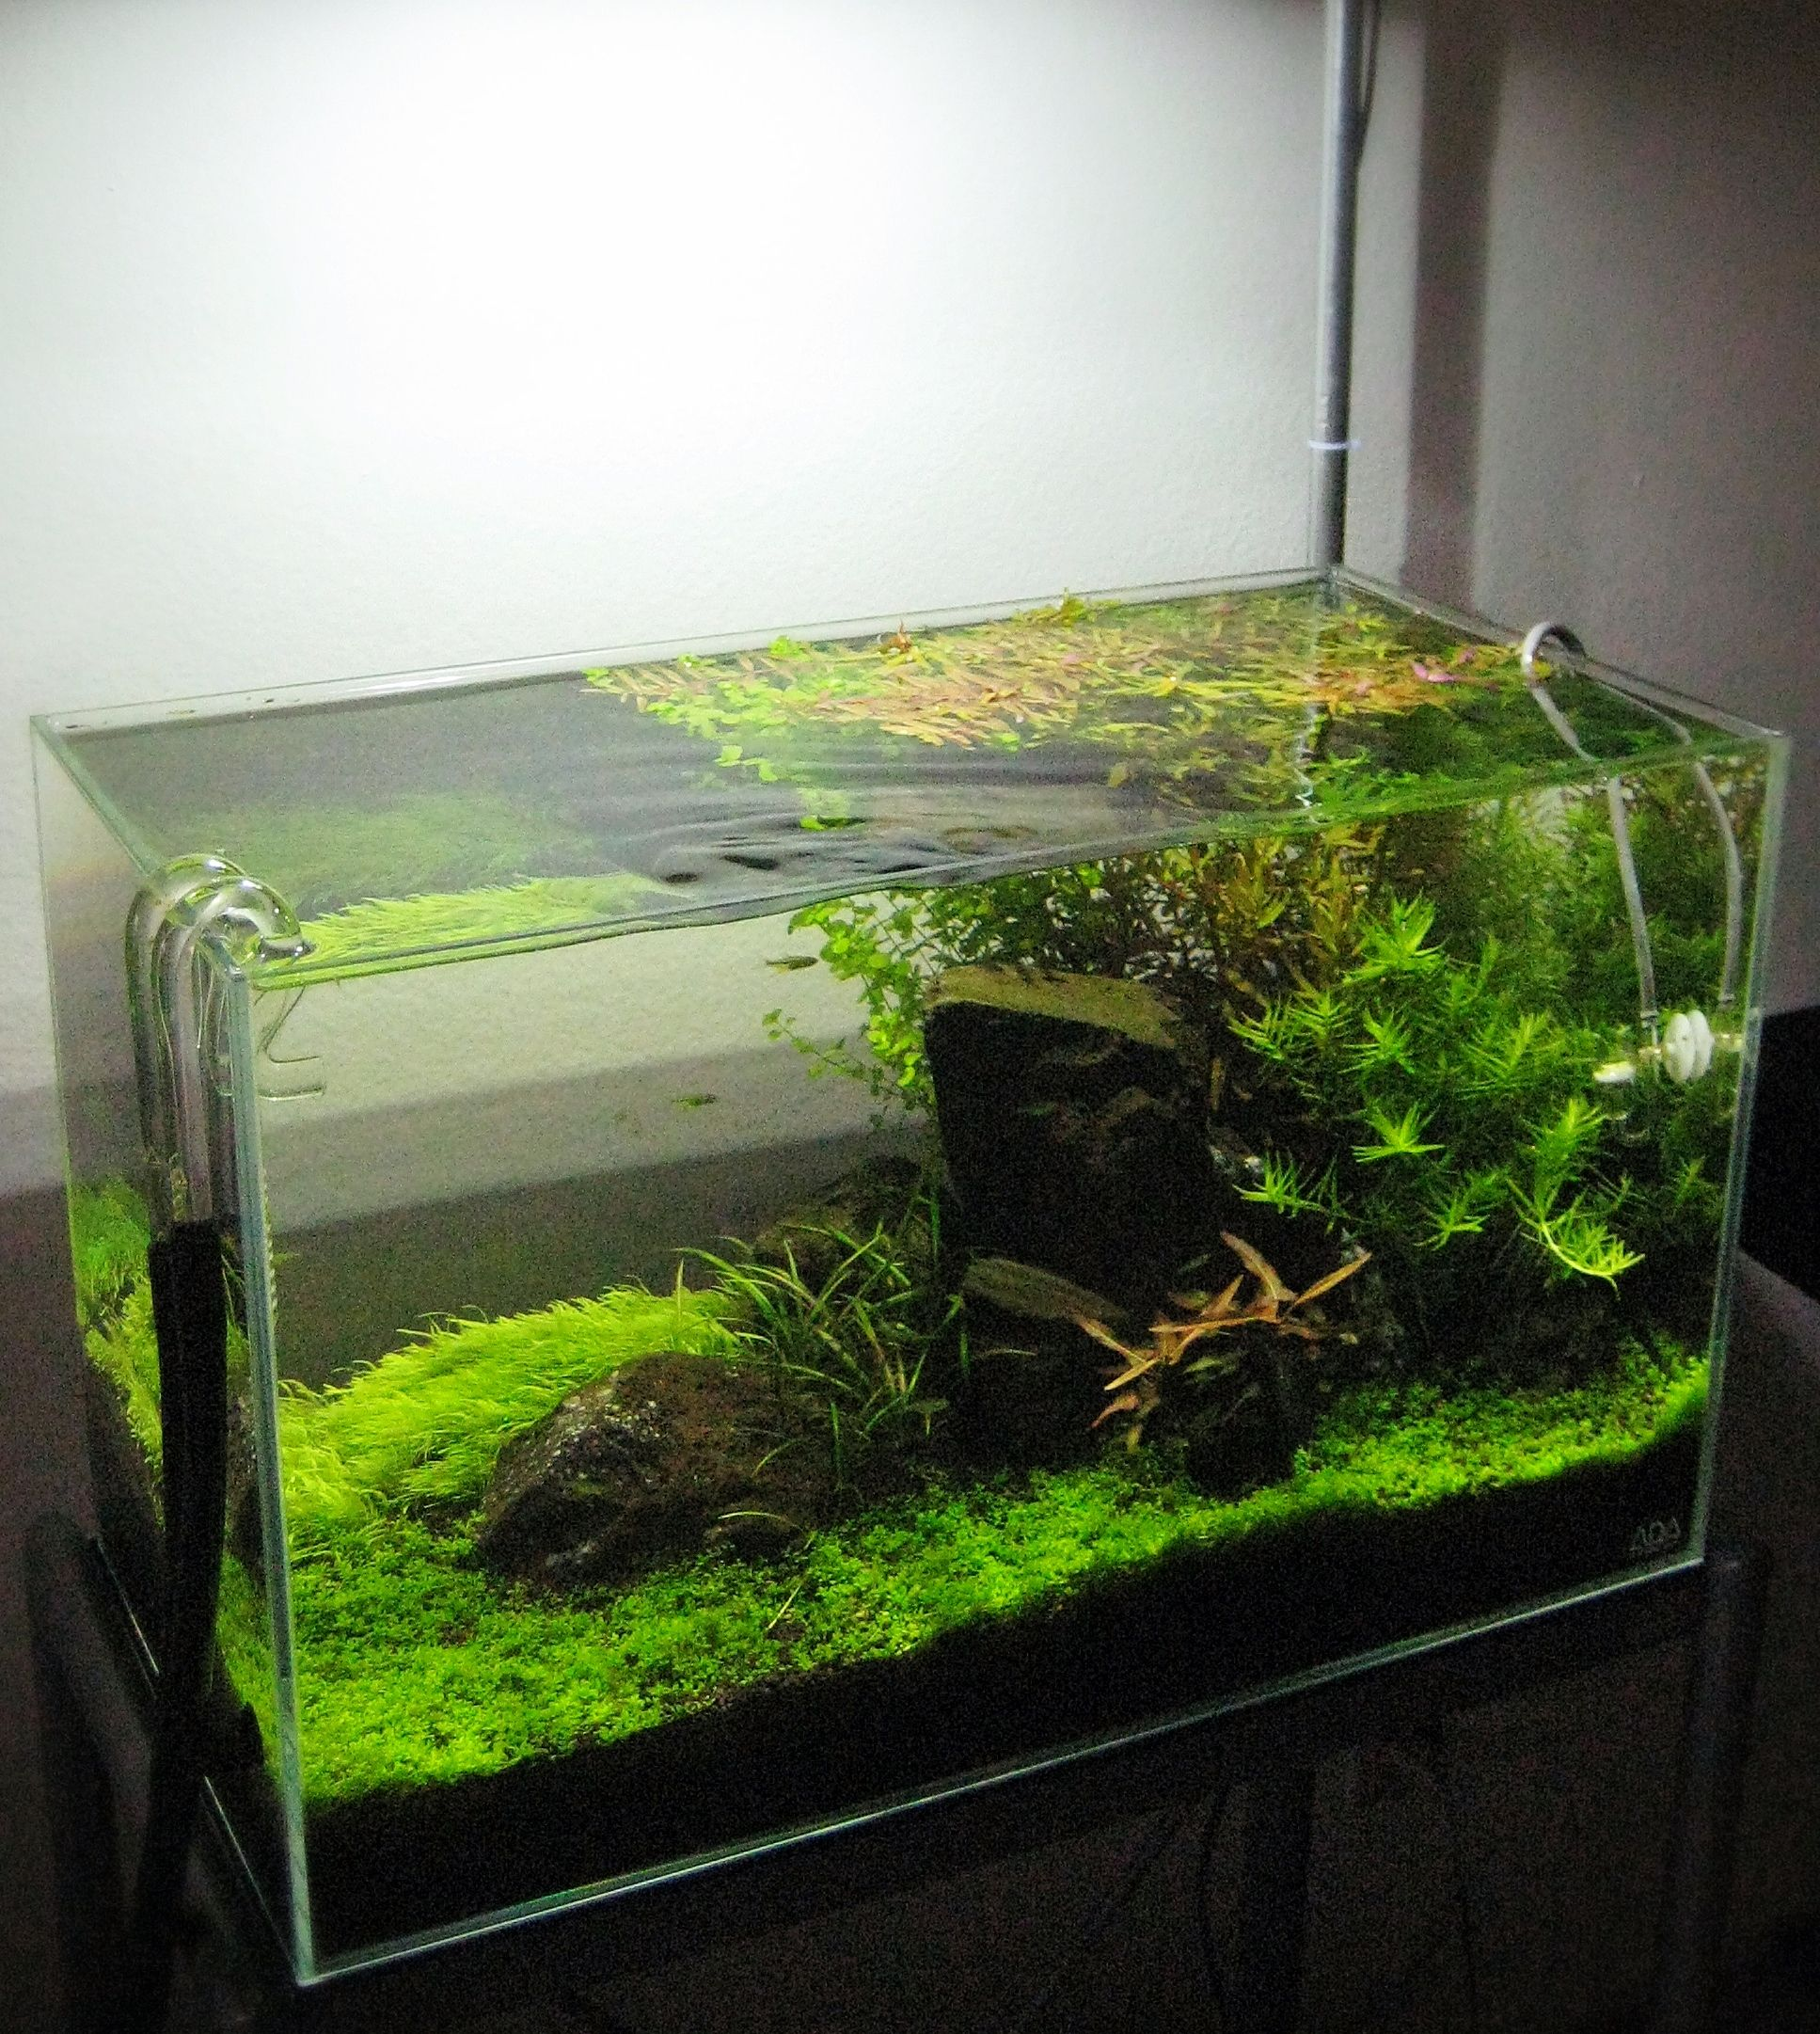 Aquarium fish 5 gallon tank - Tetrascape Designs 20 Gallon Freshwater Planted Tank Tetrascapedesigns